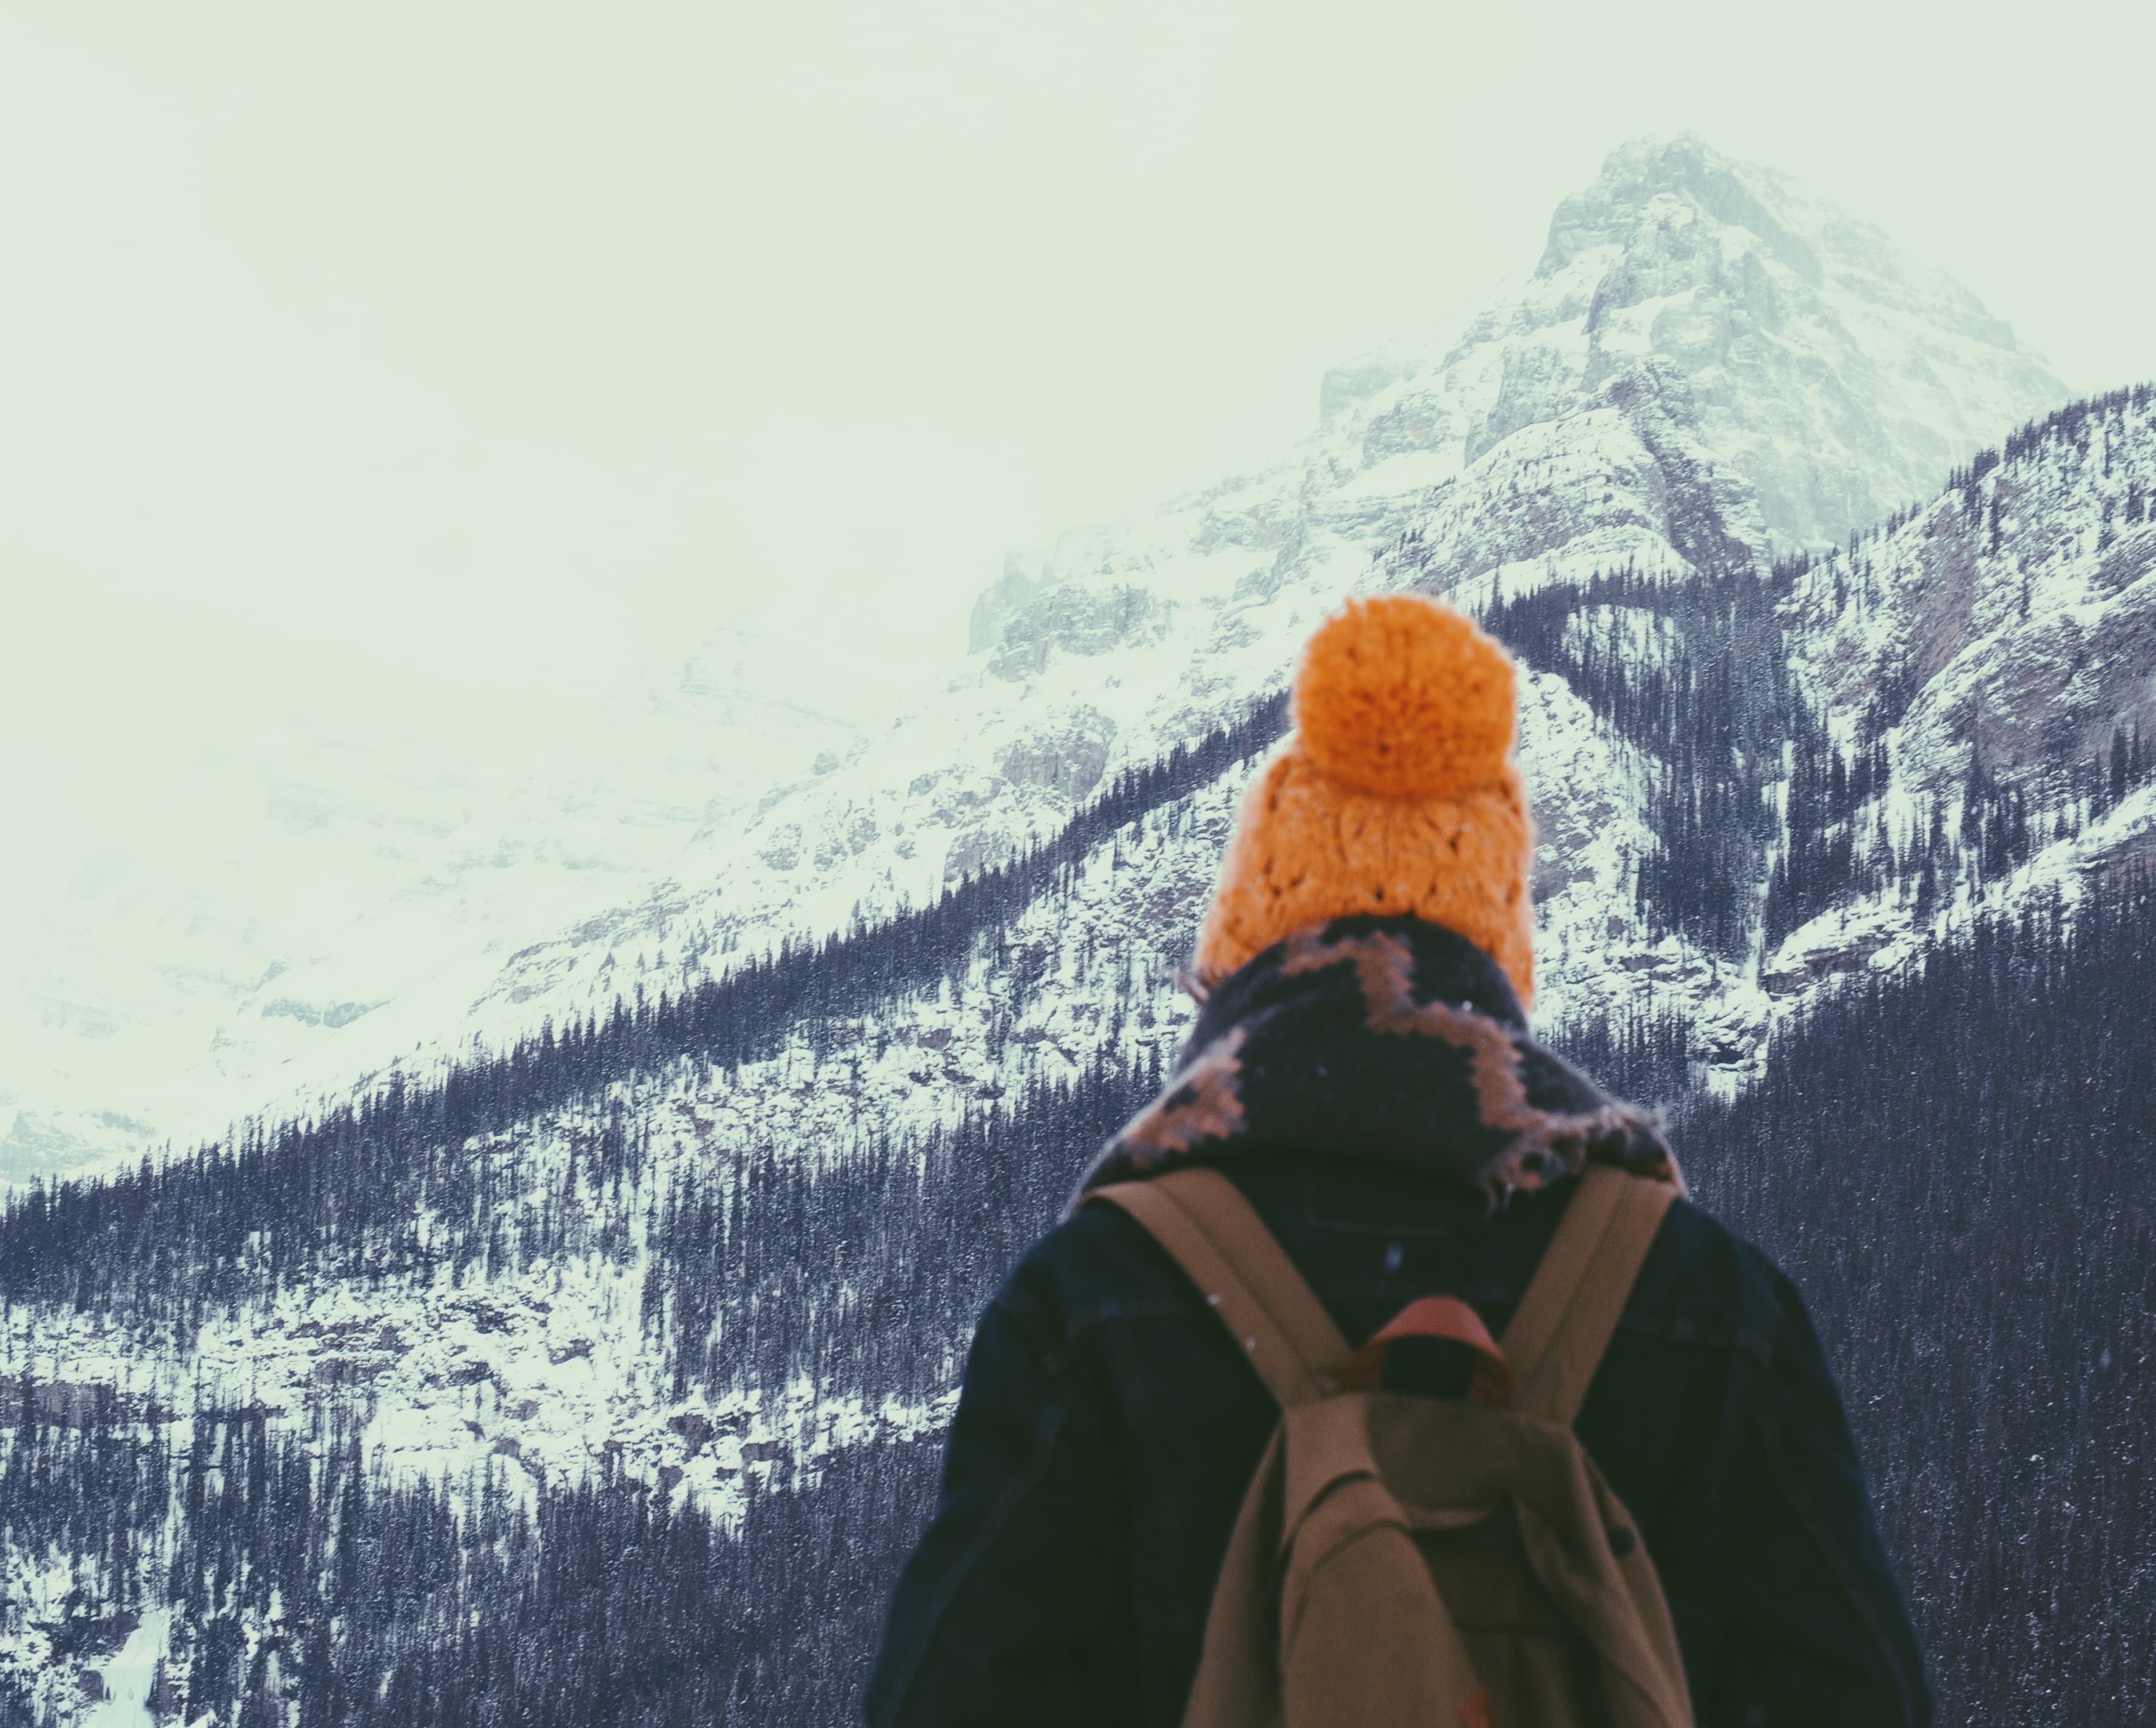 The Best Winter Hats for Hiking Featured Image - Photo by Ezra Jeffrey-Comeau on Unsplash